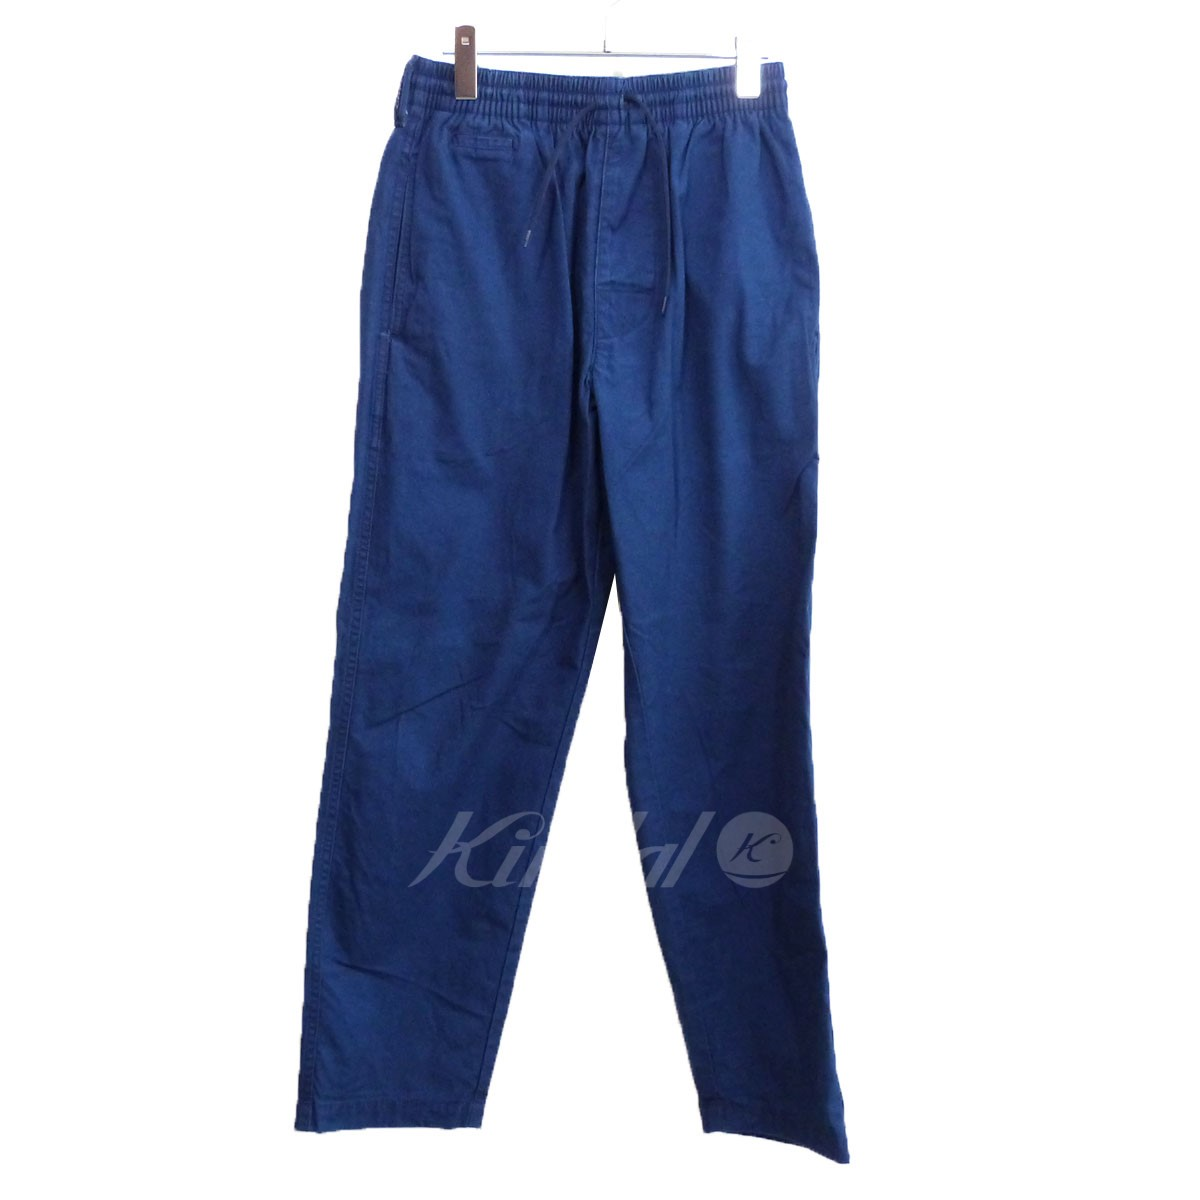 【中古】DESCENDANT 18SS 「SHORE 01 HOMME/TWILL PANT」ツイルイージーパンツ 【送料無料】 【119740】 【KIND1550】